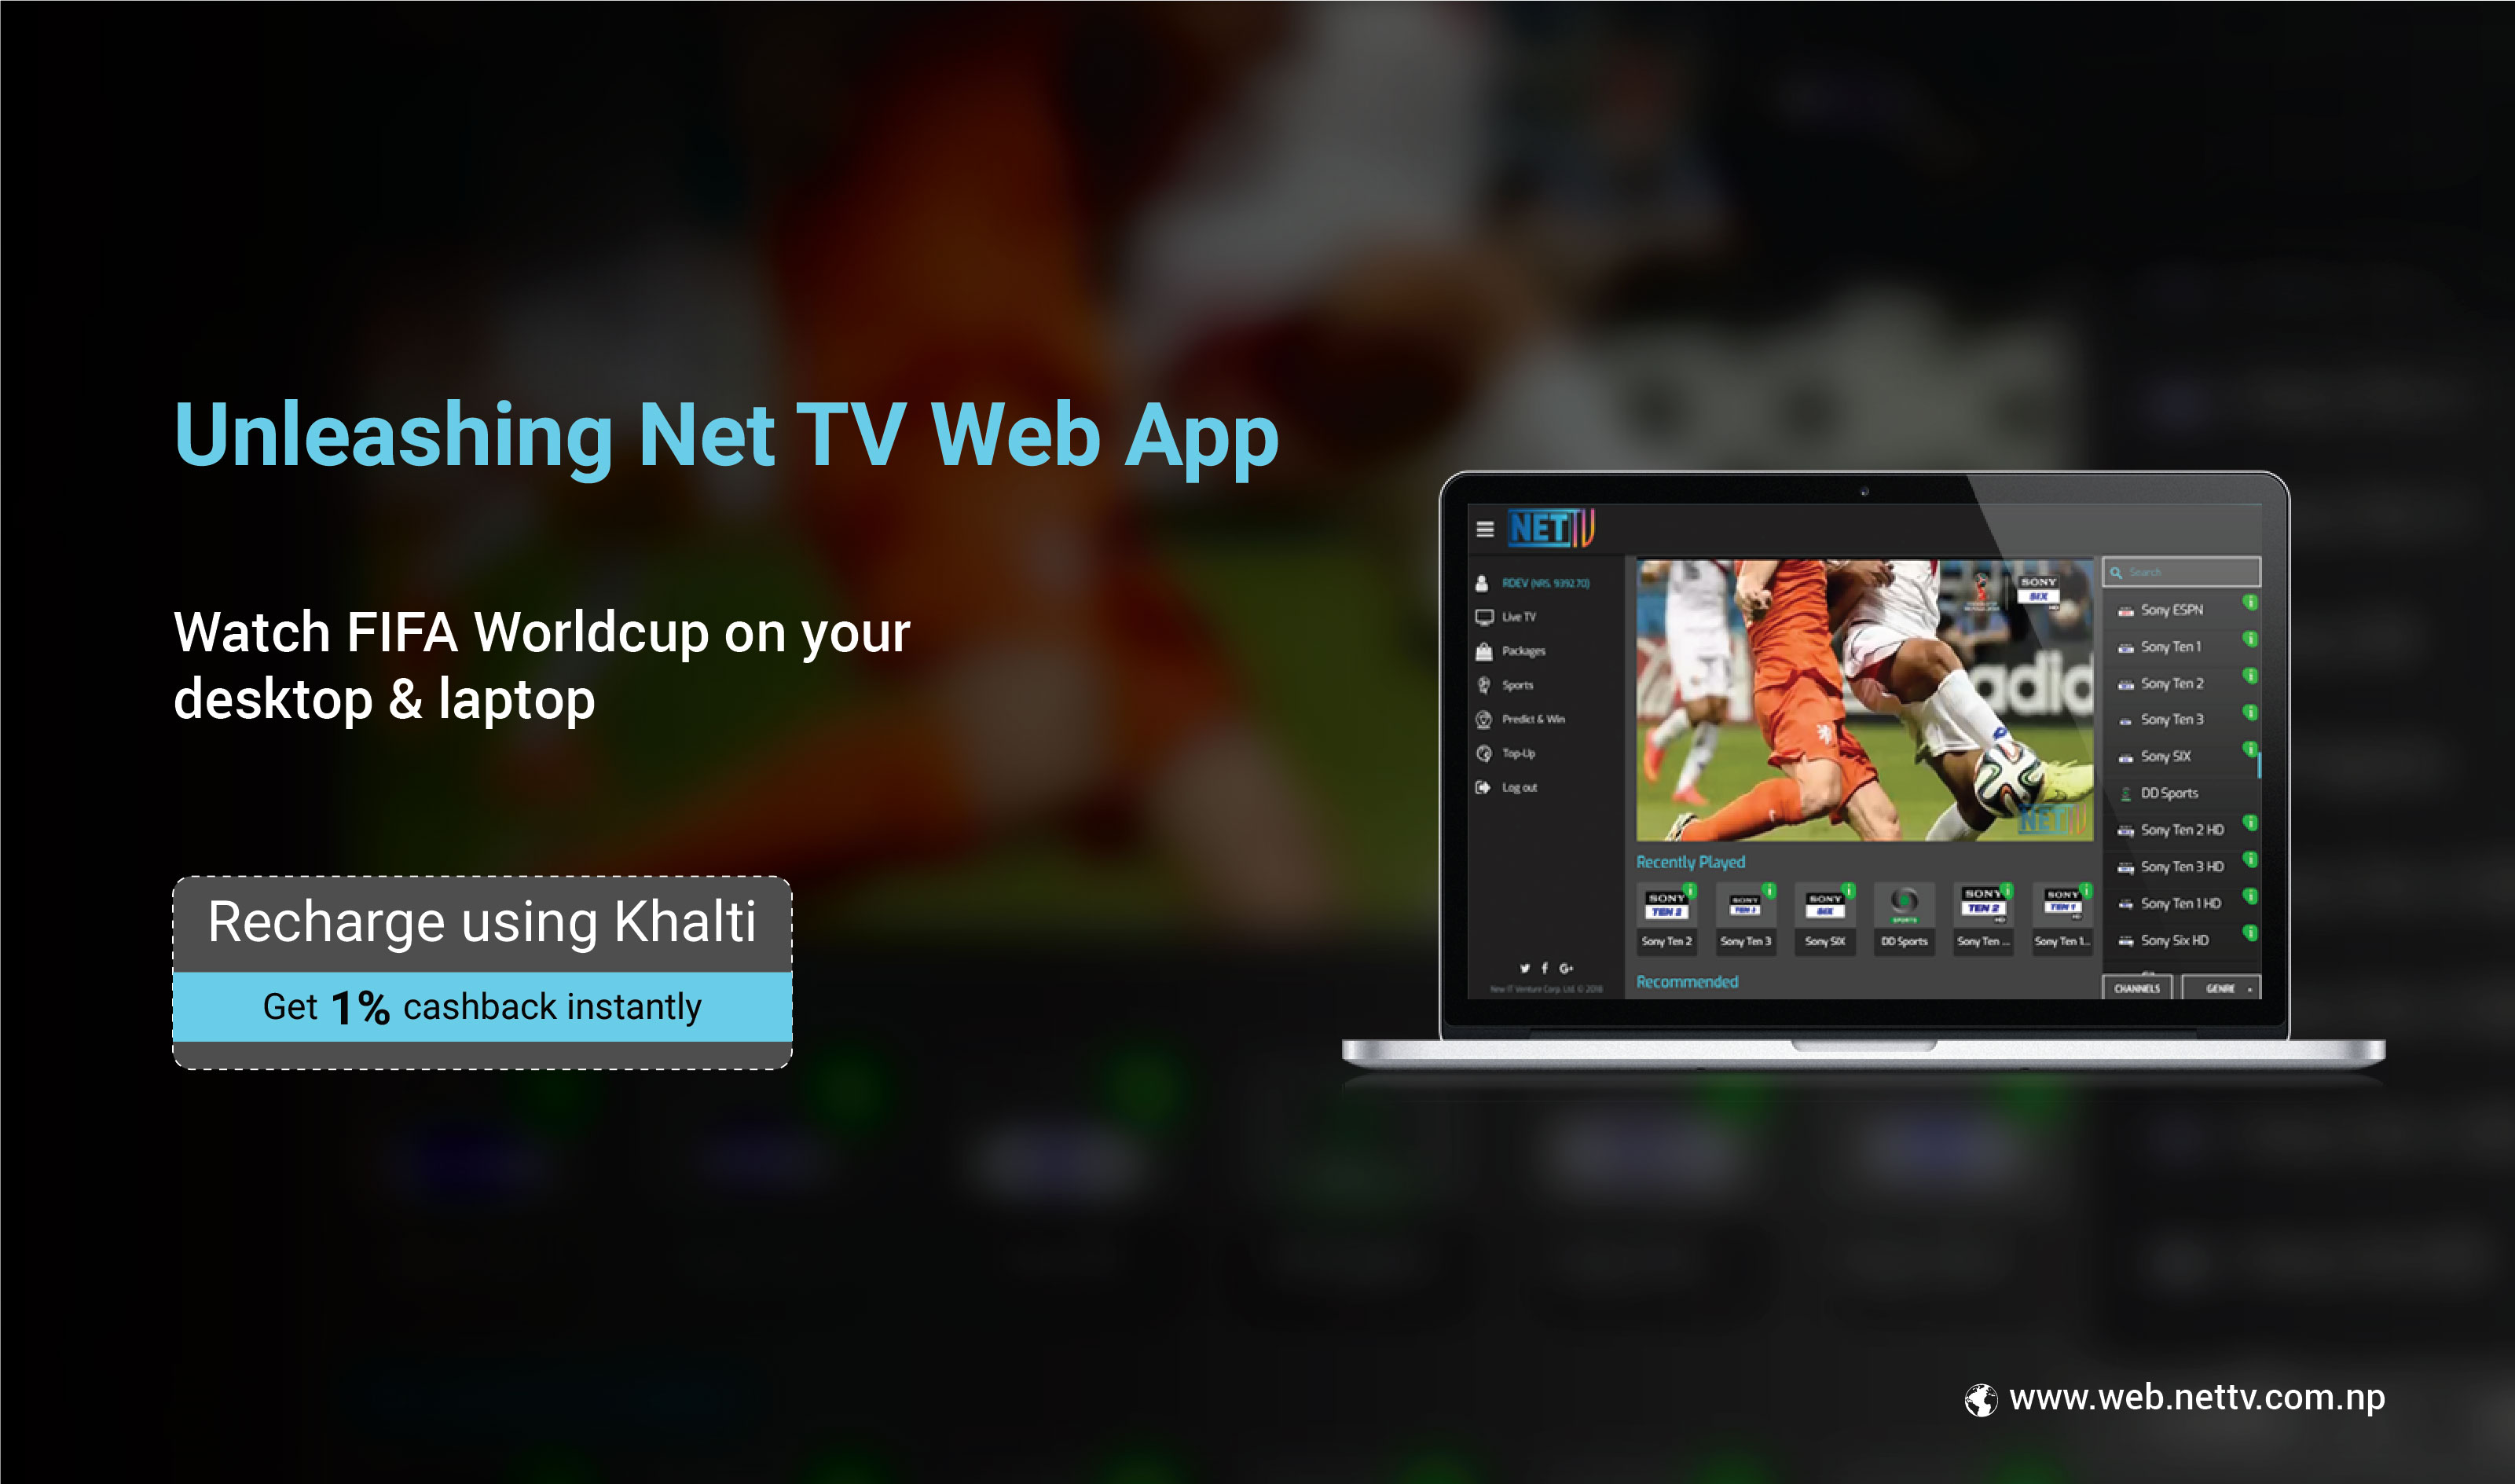 How to recharge Net TV App online using Khalti?